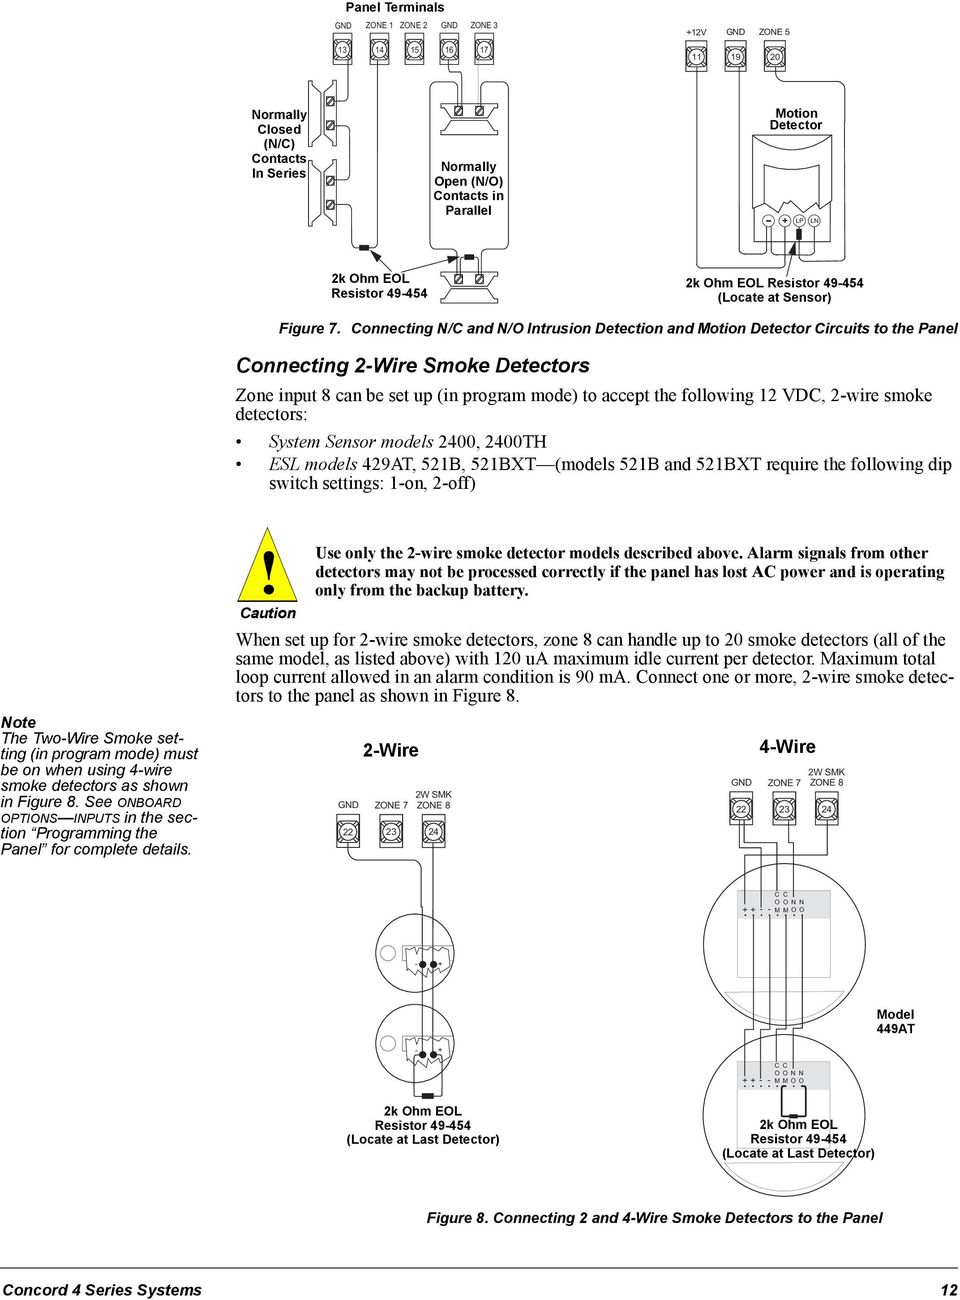 Magnificent Wiring Diagram Ge Concord Basic Electronics Wiring Diagram Wiring Cloud Hisonuggs Outletorg